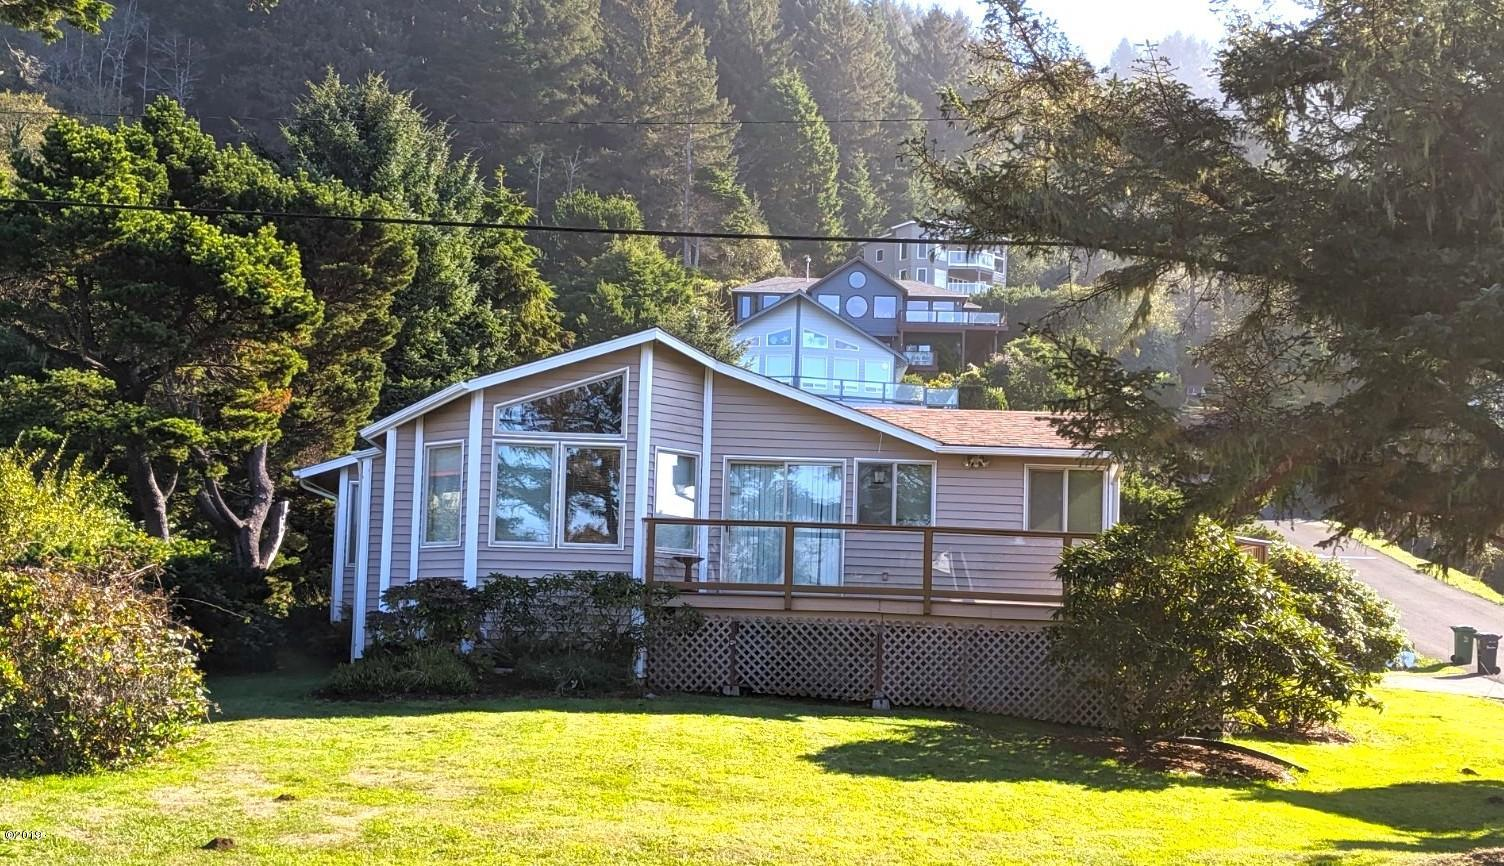 261 Hill Ct, Yachats, OR 97498 - 261 Hill Court From The West